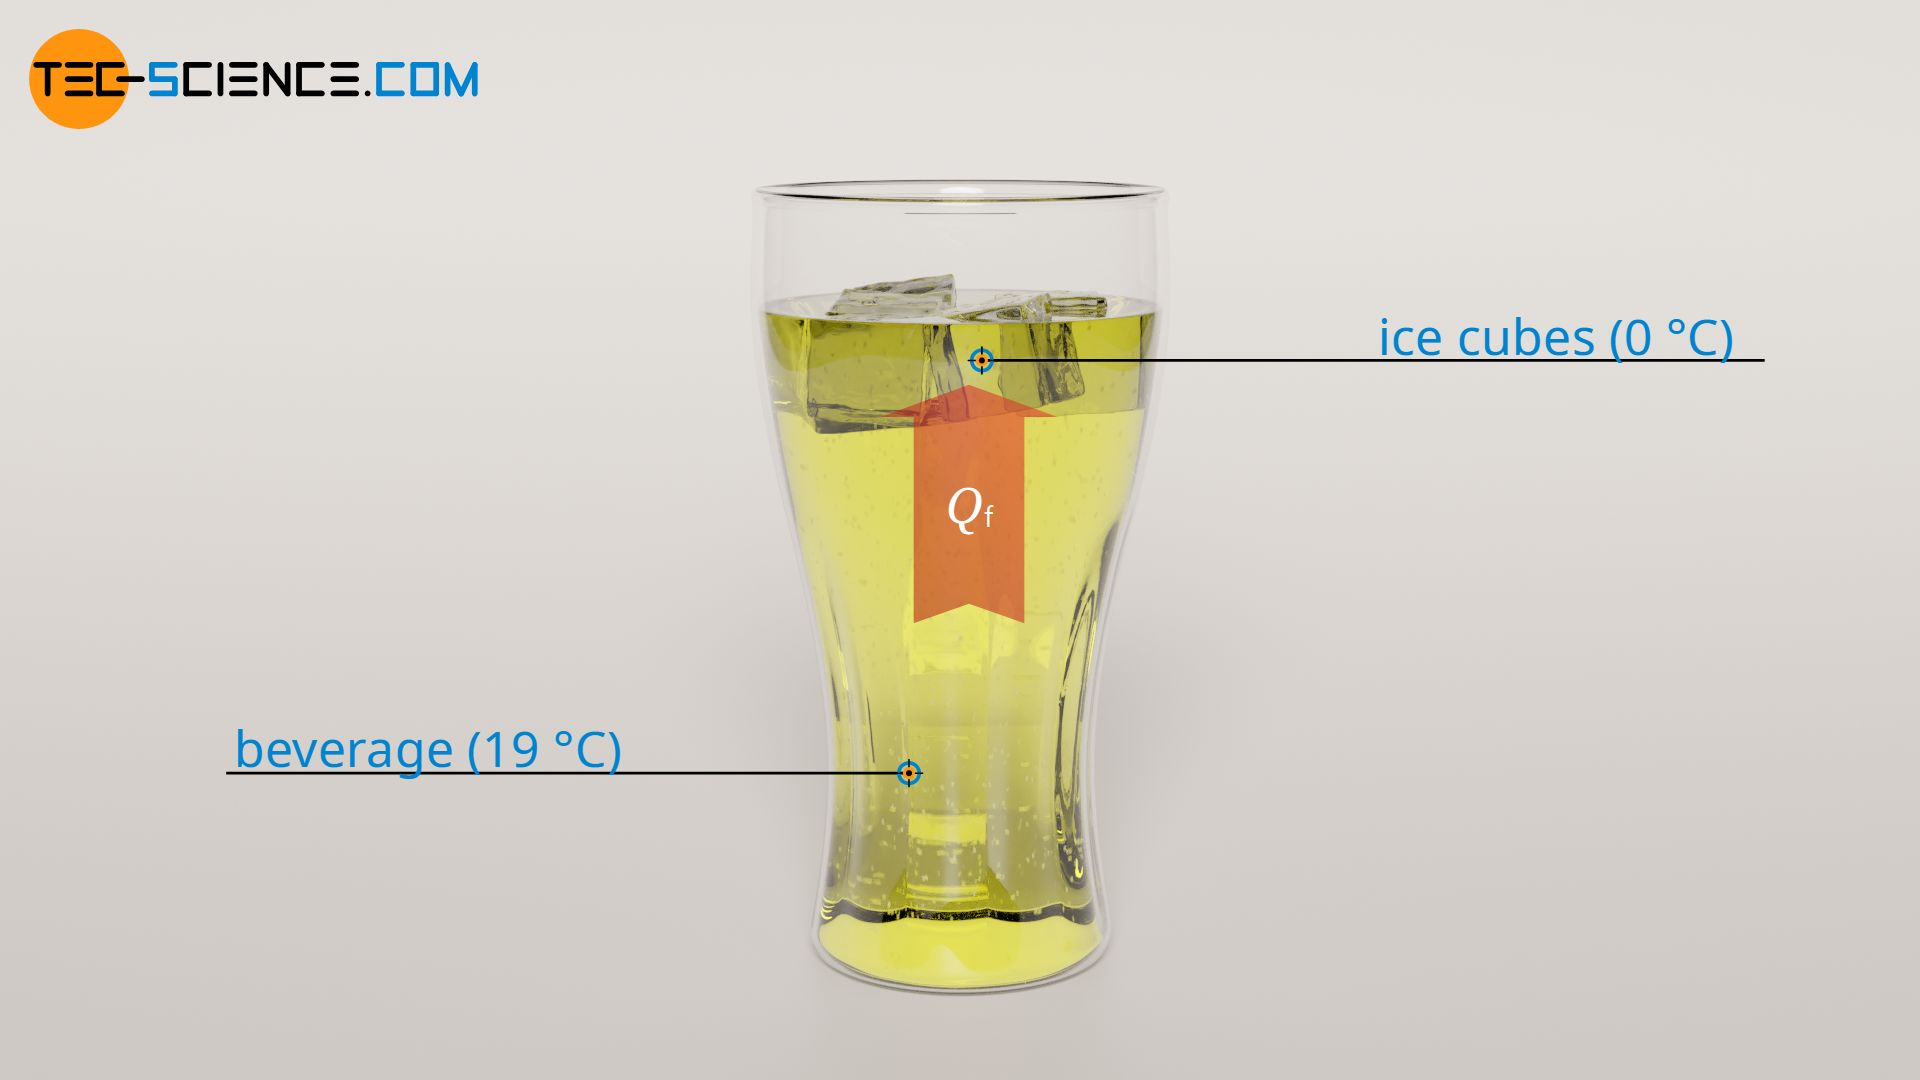 Melting of the ice cubes due to the heat released from the beverage